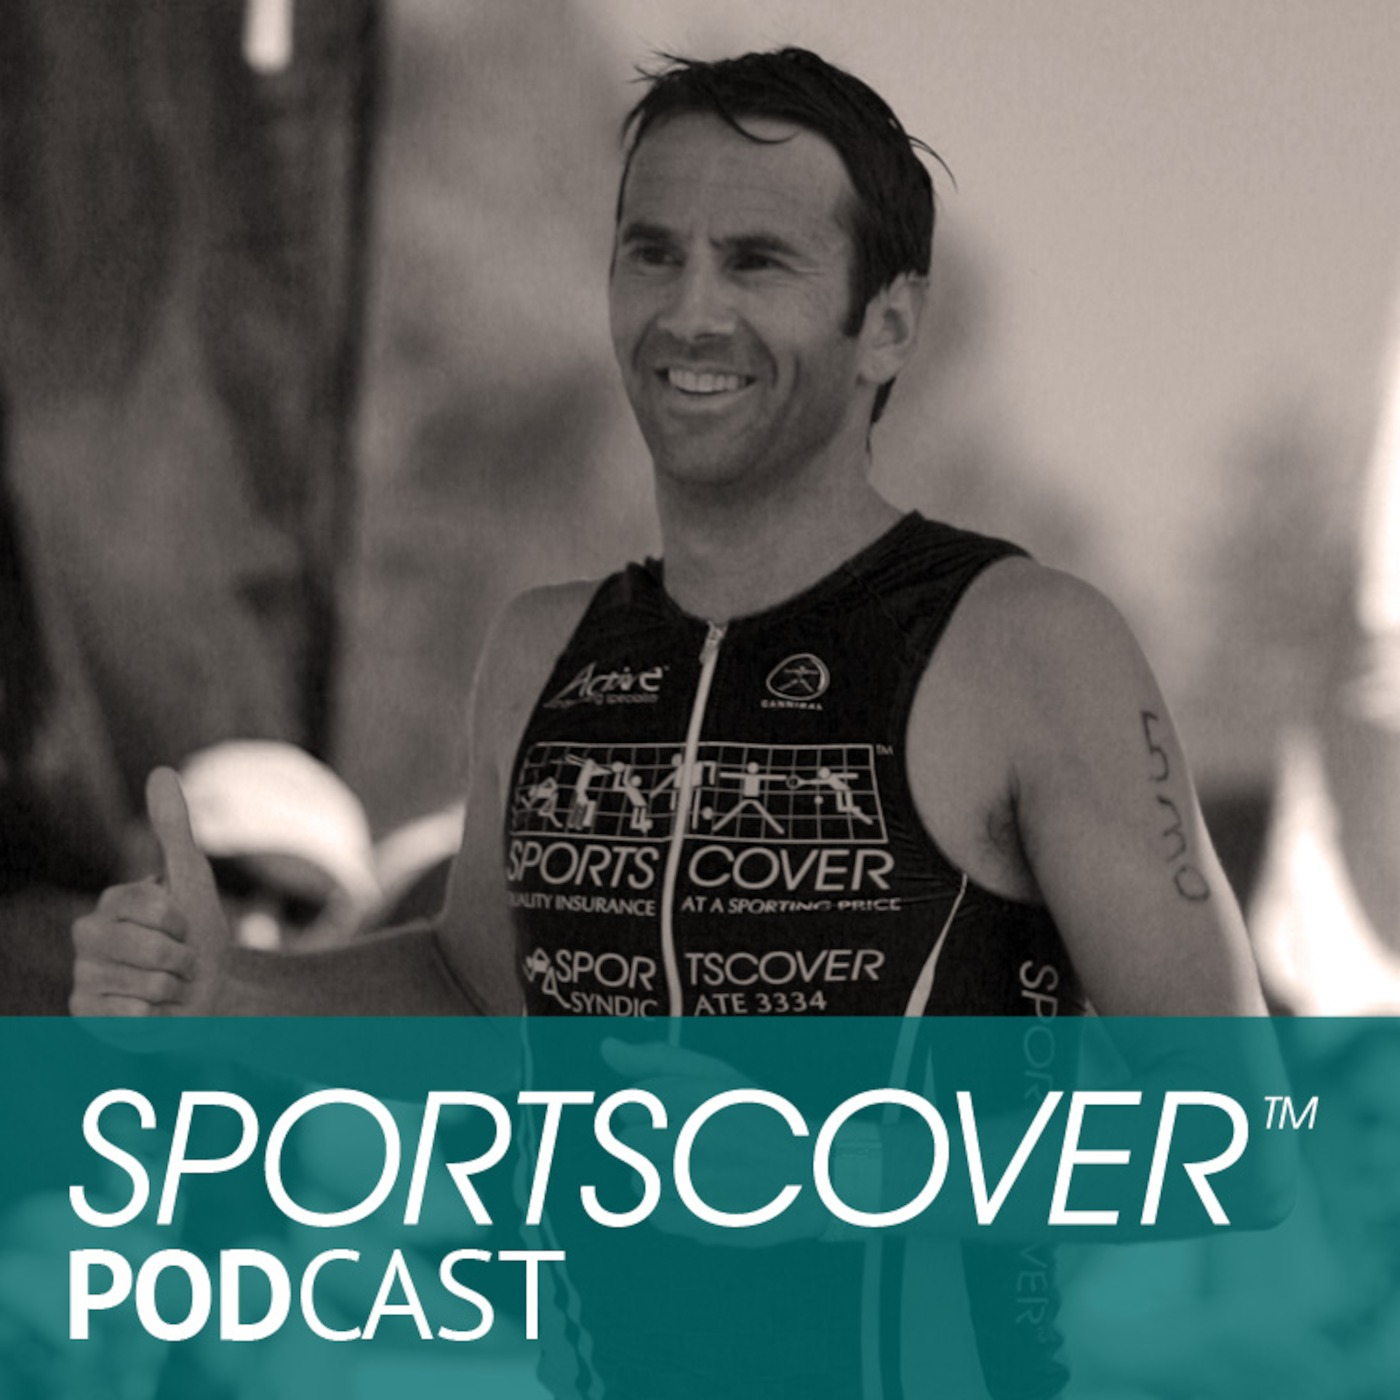 Sportscover's Podcast